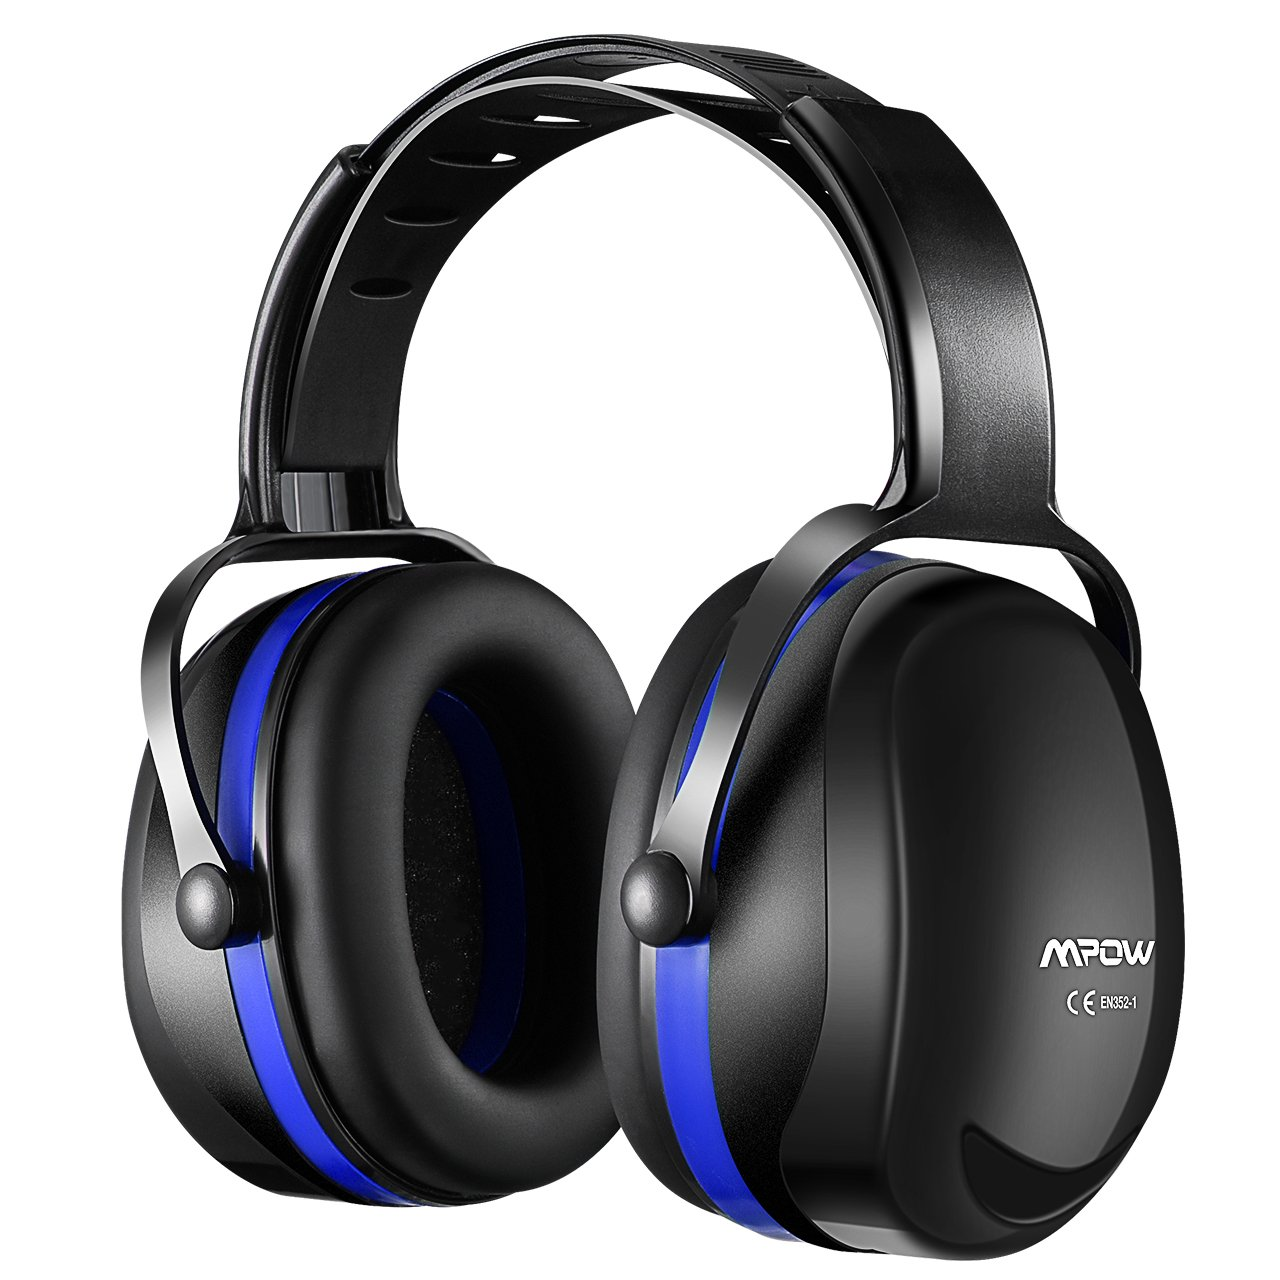 Mpow Ear Protection 2 Packs, NRR 28dB Professional Ear Defenders with a Carrying Bag, Foldable Noise Reduction Safety Ear Muffs for Hearing Protection, Shooting, Mowing, Construction, Woodworking by Mpow